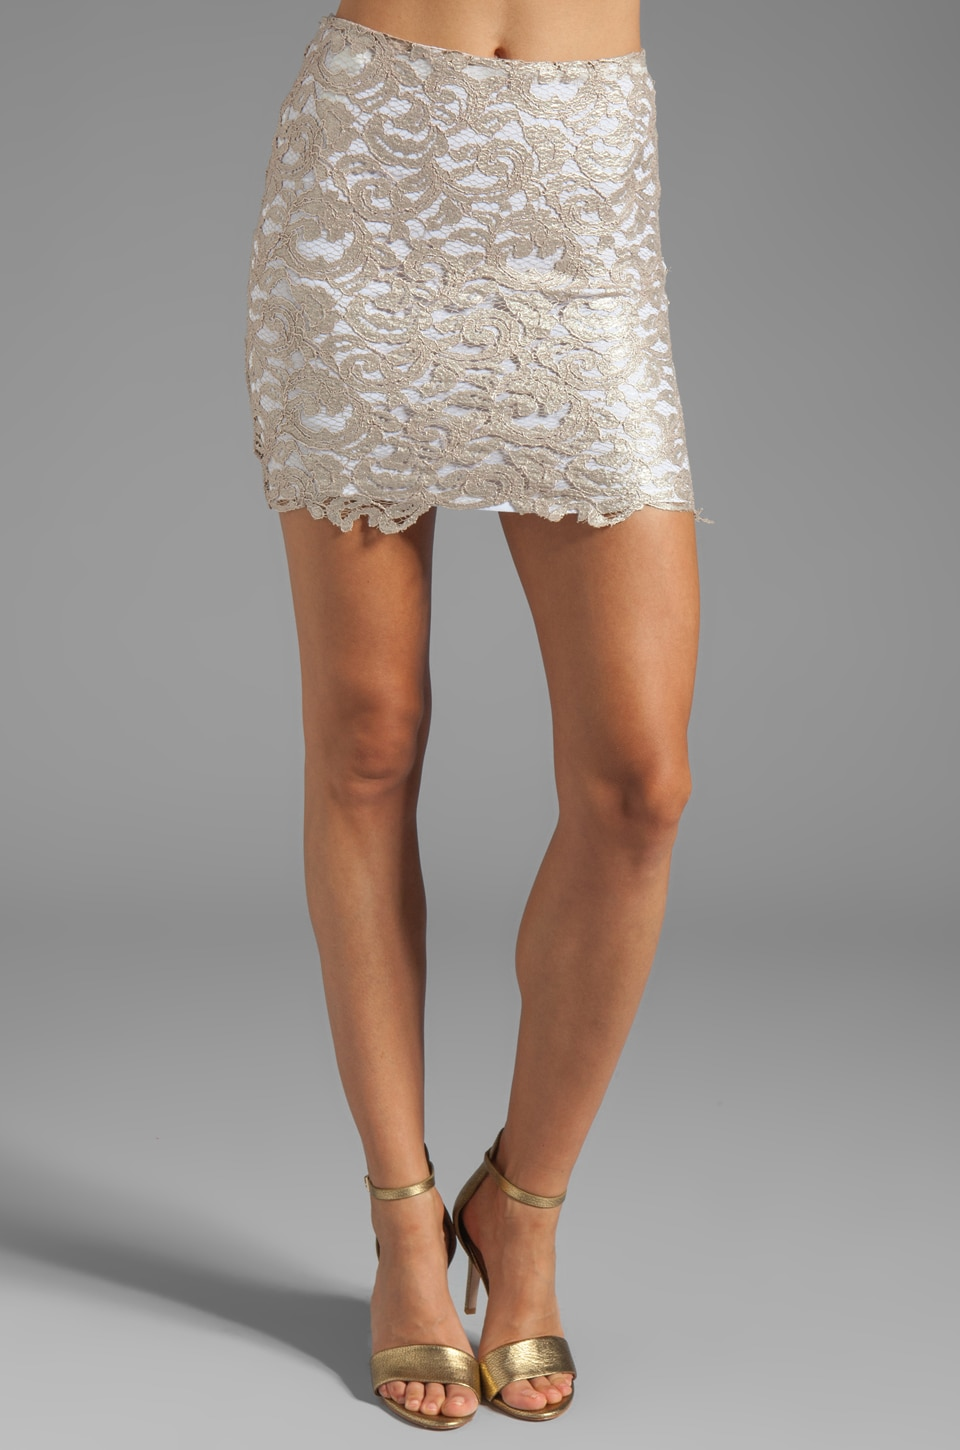 Nookie Lovelace Mini Skirt in Champagne